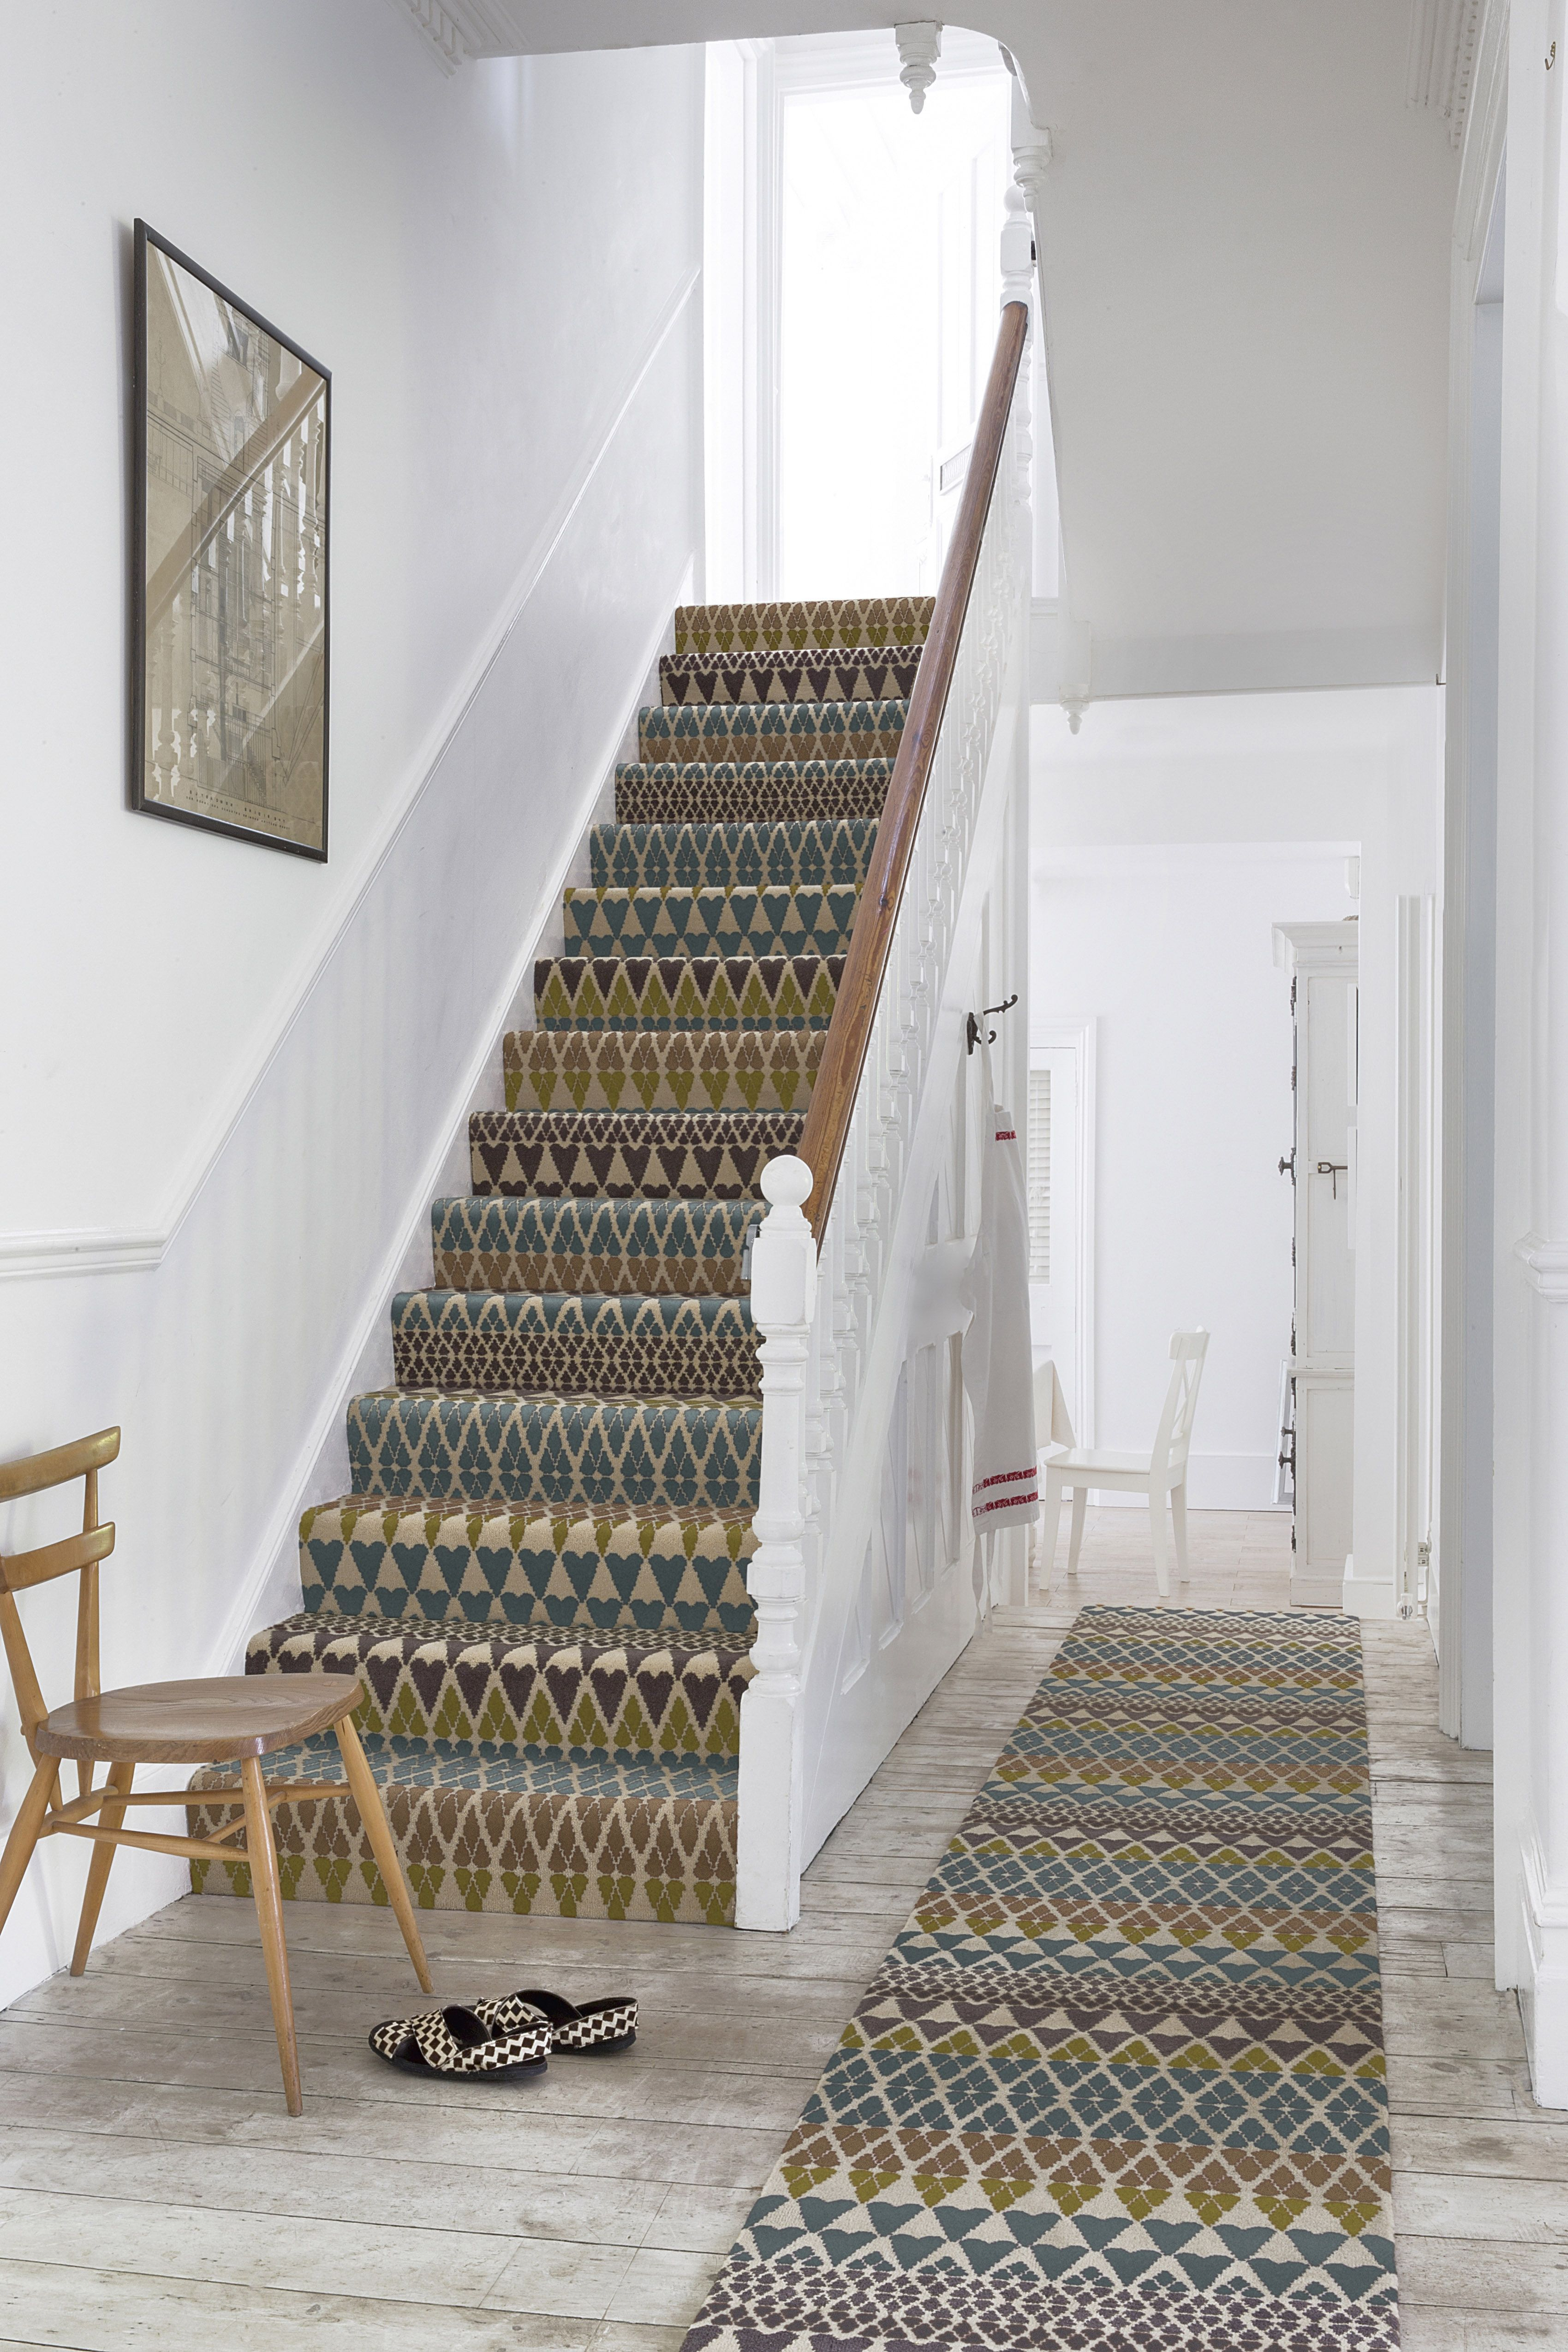 Designer Margo Sel Quirky B Wool Fair Isle Annie Stair Runners | Textured Carpet On Stairs | Floral | Wide Stripe | Short Cut Pile | Stylish | Brown